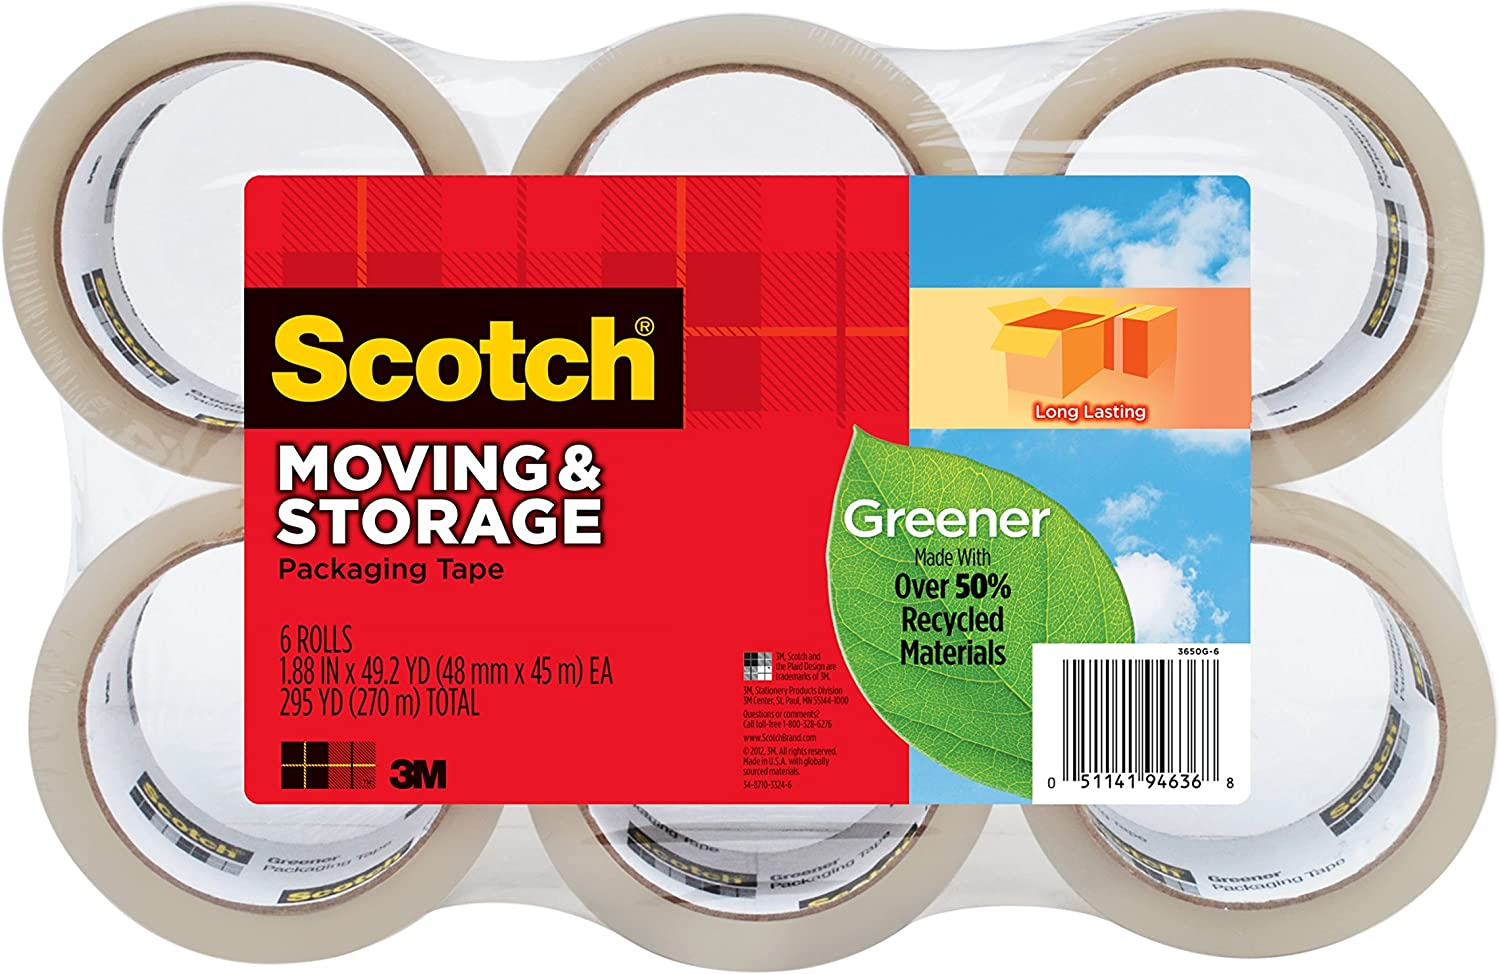 Memphis Mall Scotch Greener Long Lasting Moving Max 75% OFF Packaging Tape Storage 1.8